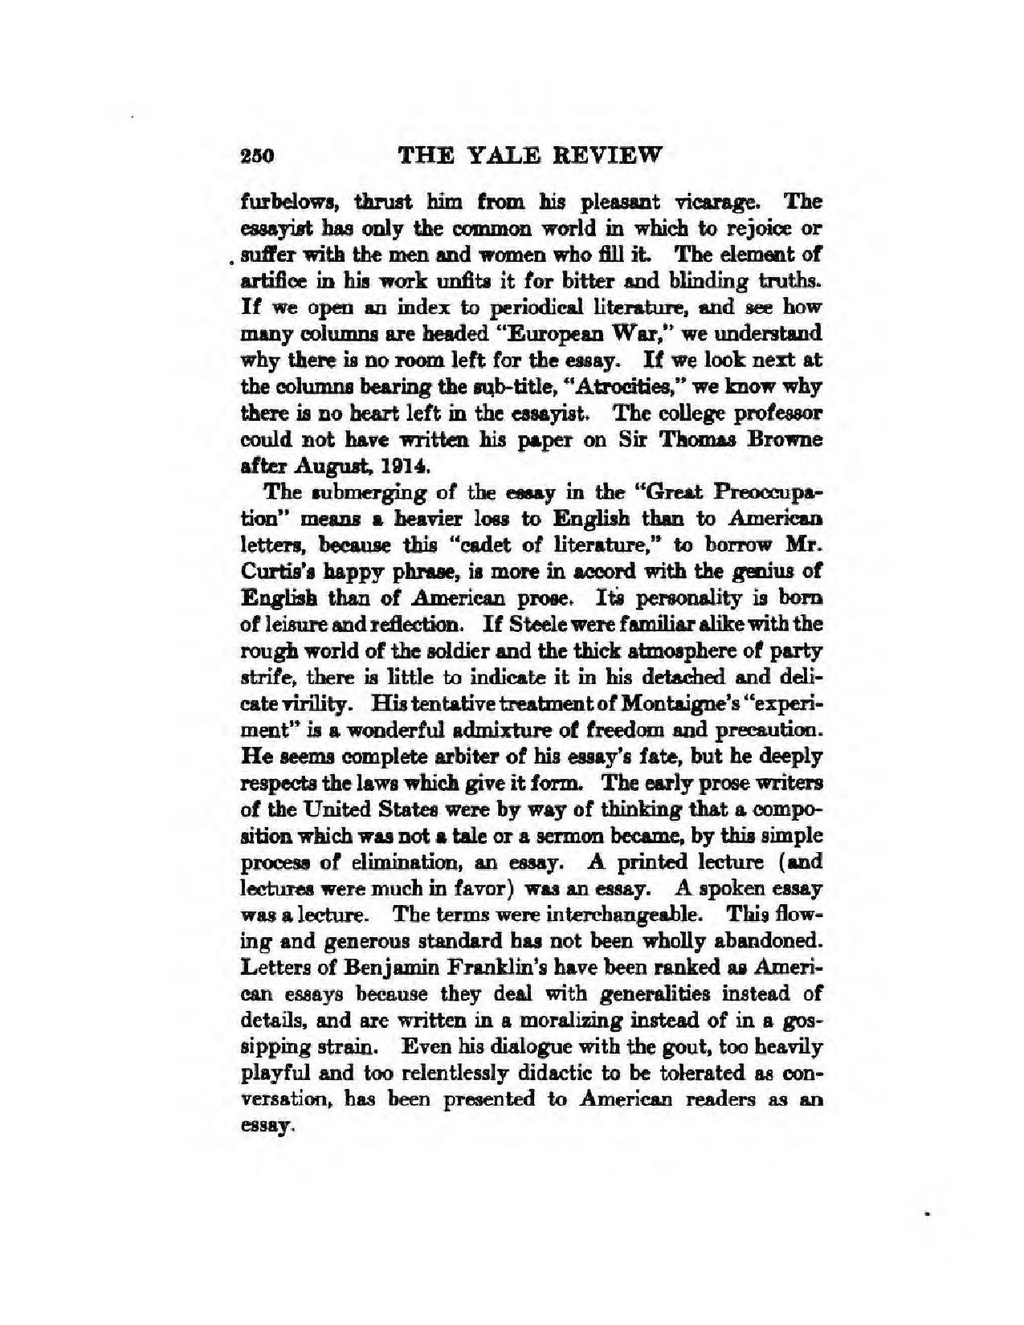 007 Essay Example What Is An American Page2 1024px The In War Time2c Agnes Repplier2c 1918 Stupendous Ideas Definition Crevecoeur Summary Full